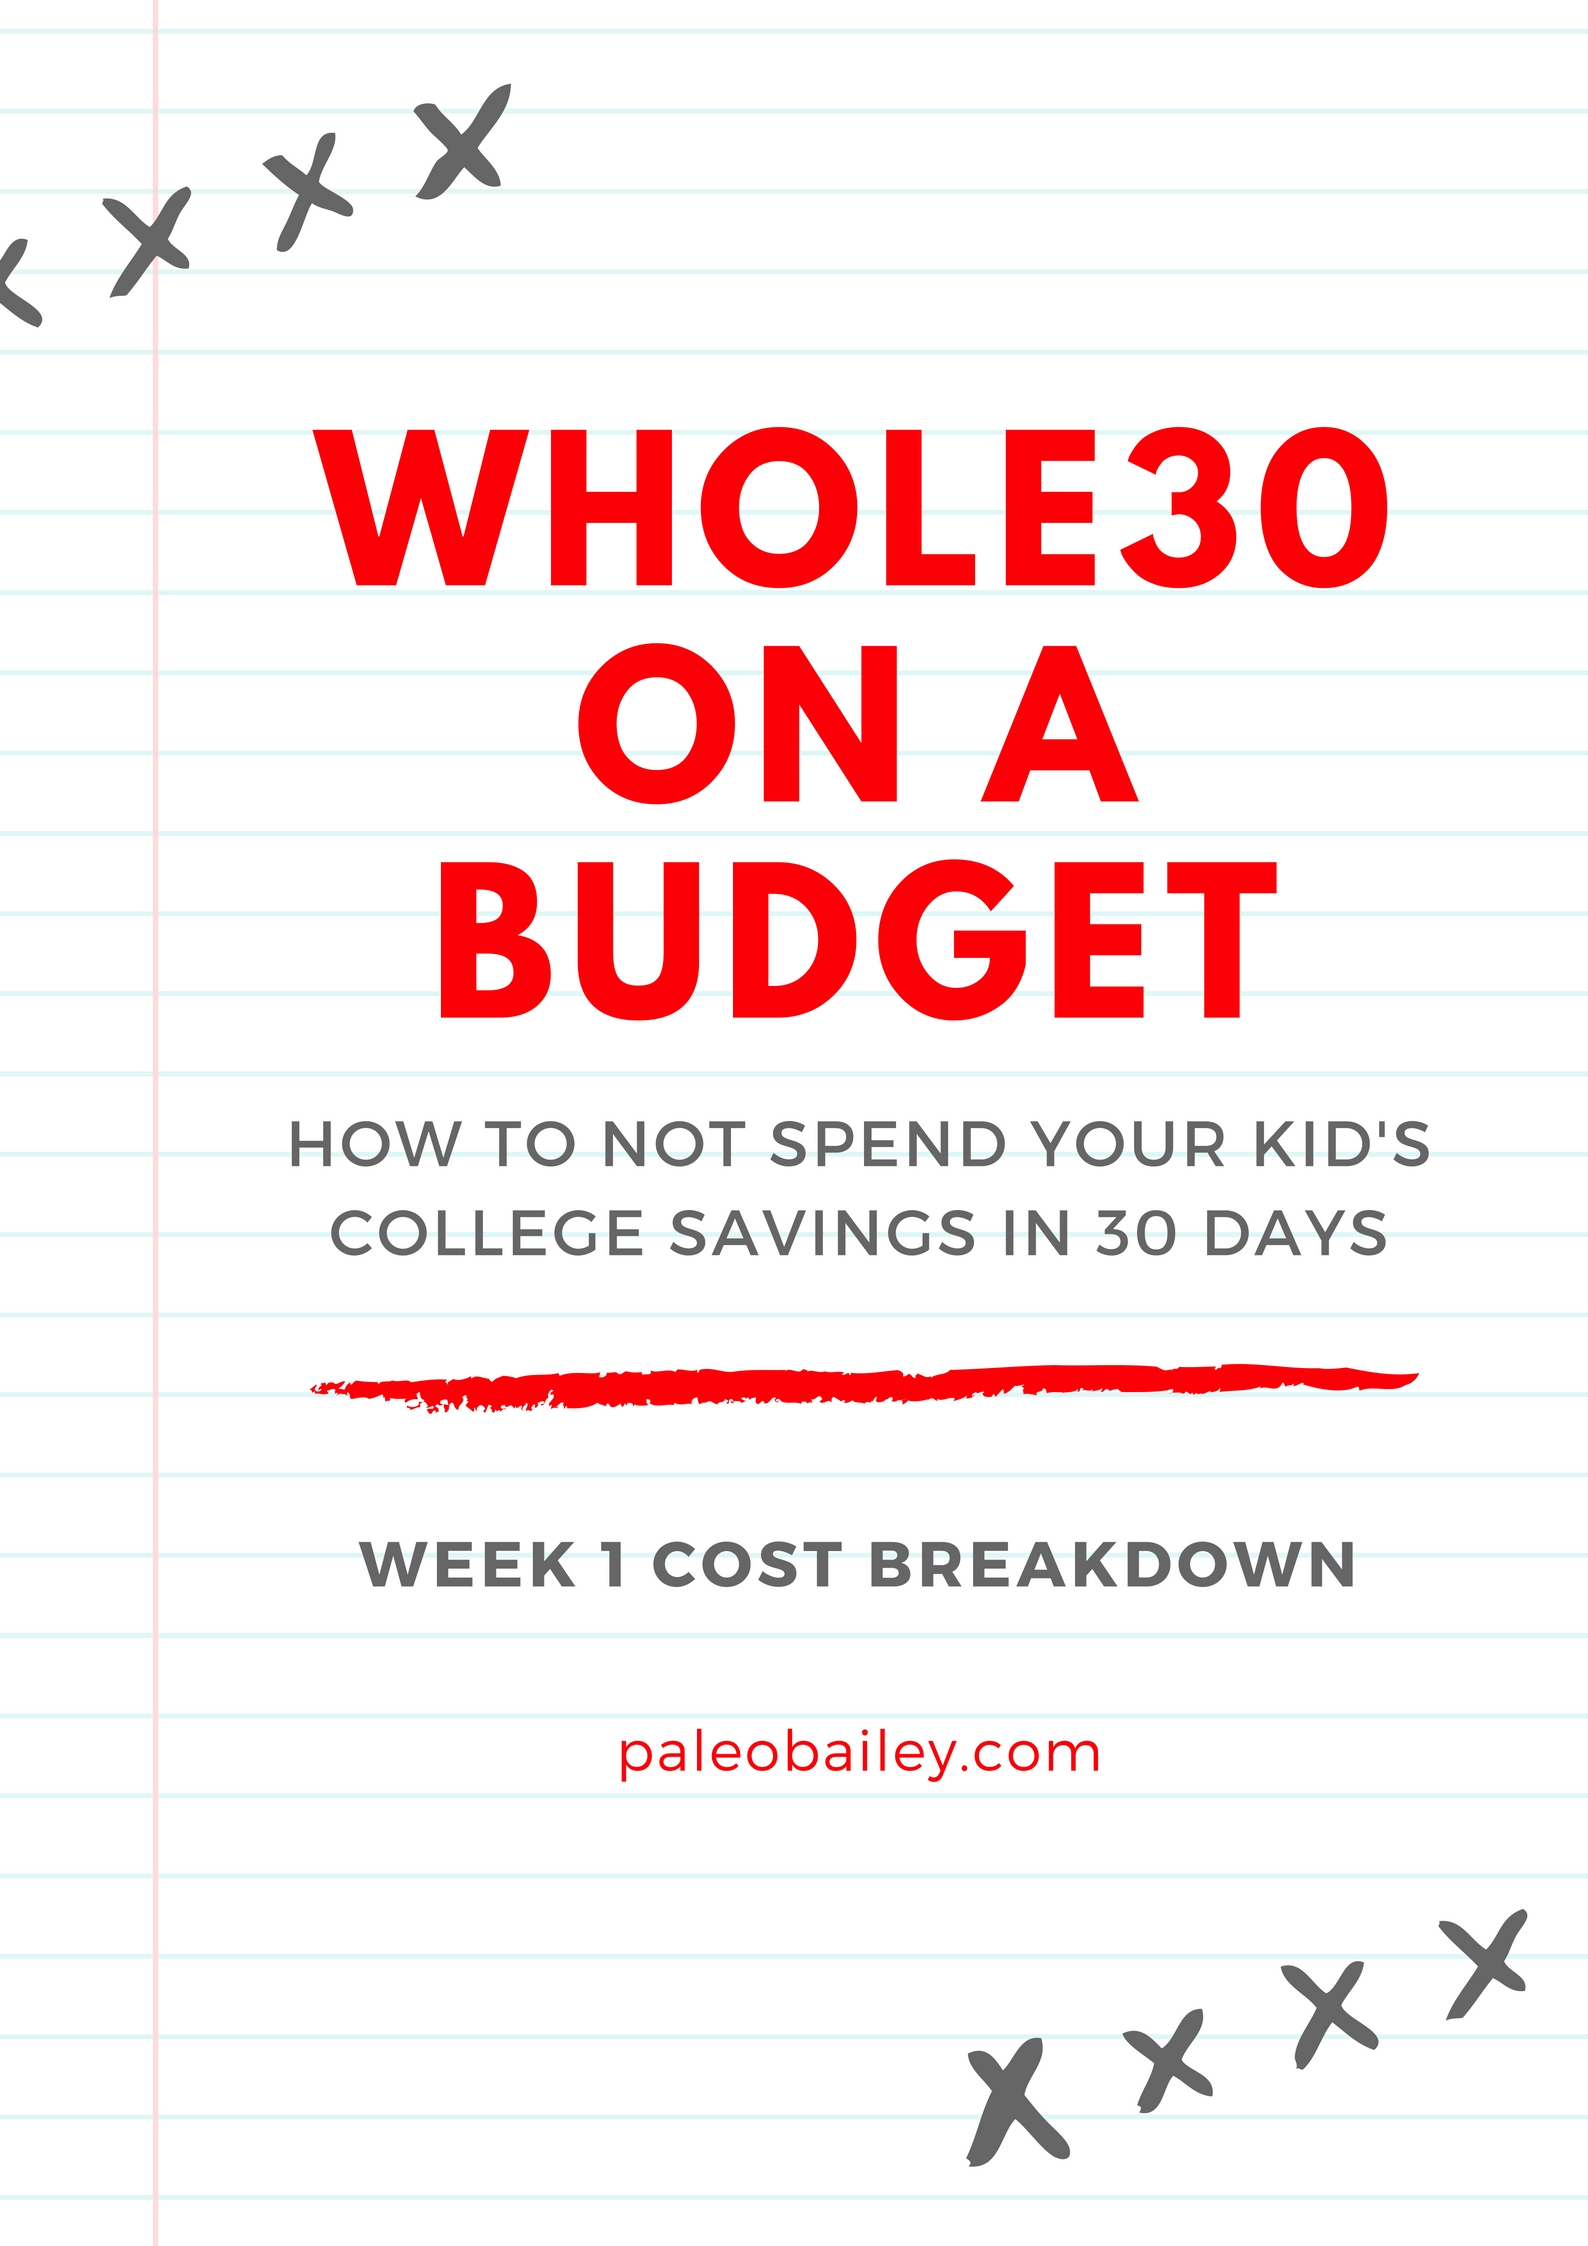 Whole30 on a budget isn't as hard as you may think. With this breakdown of how to eat Whole30 on a budget and do Whole30 cheap, you'll find tips and tricks to cut costs #whole30budget #budgetwhole30 #cheapwhole30